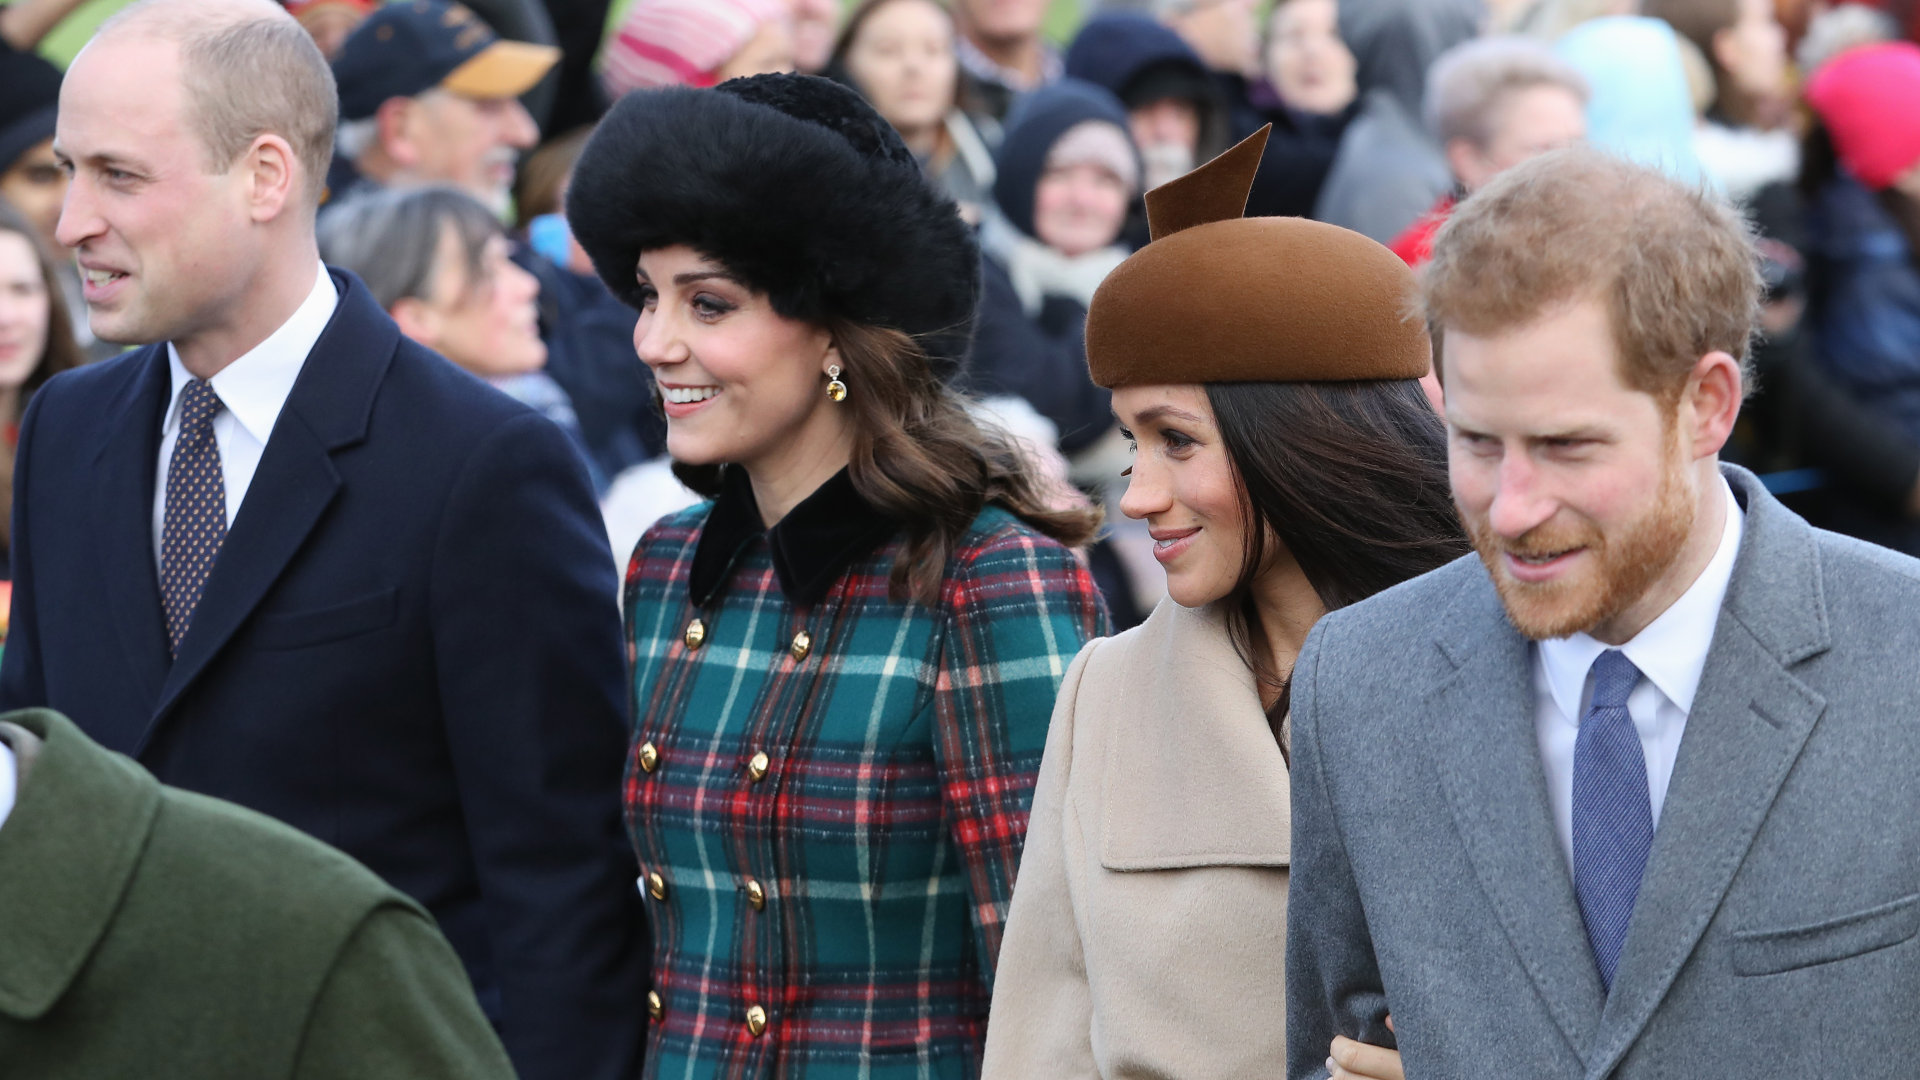 There's a Super Specific Reason Why the Royals Are Constantly Re-Wearing Their Shoes